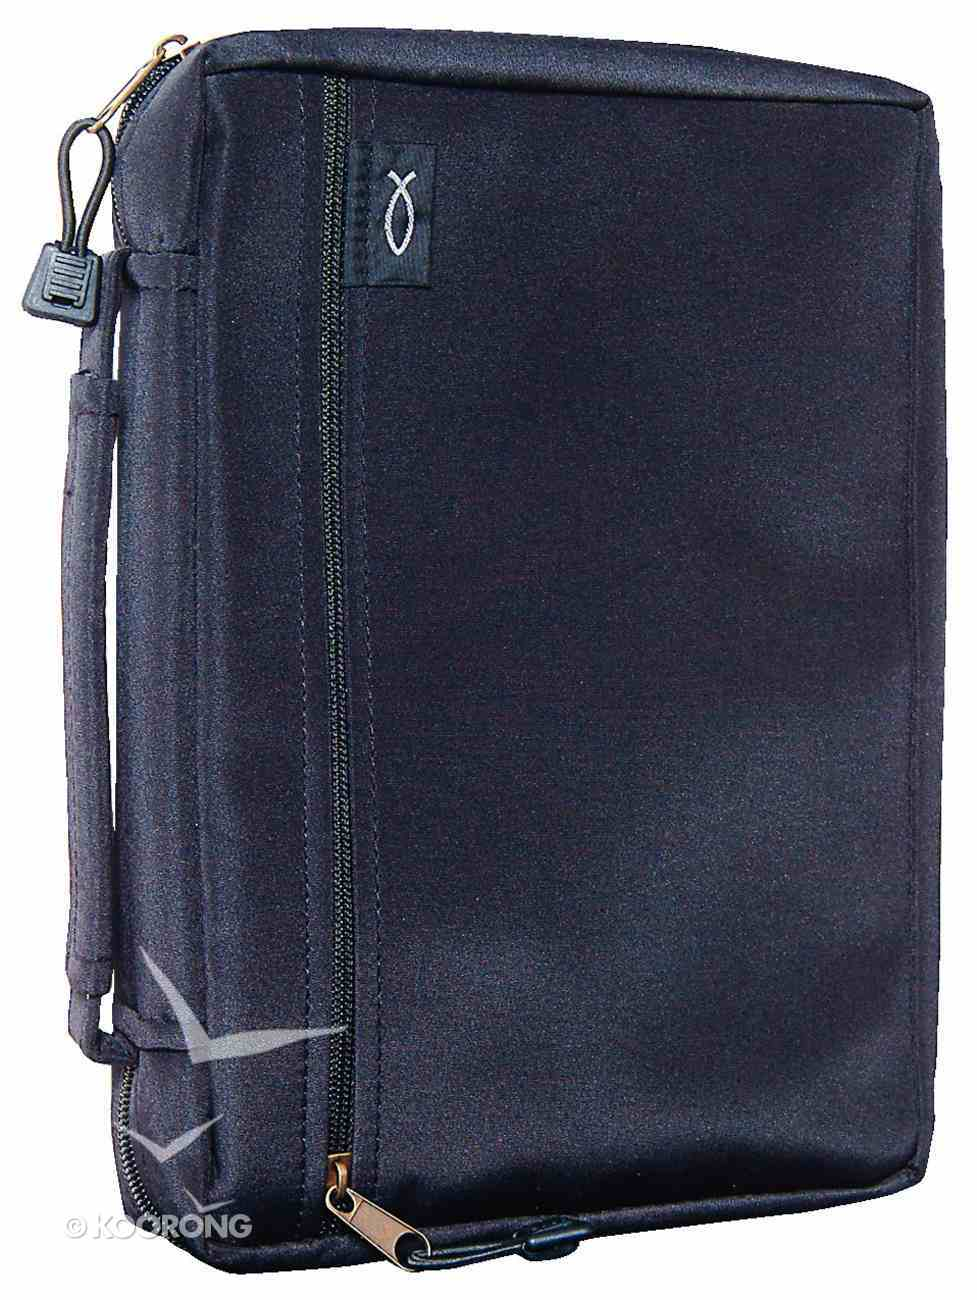 Bible Cover Micro-Fiber Black With Zipped Pocket Large Bible Cover